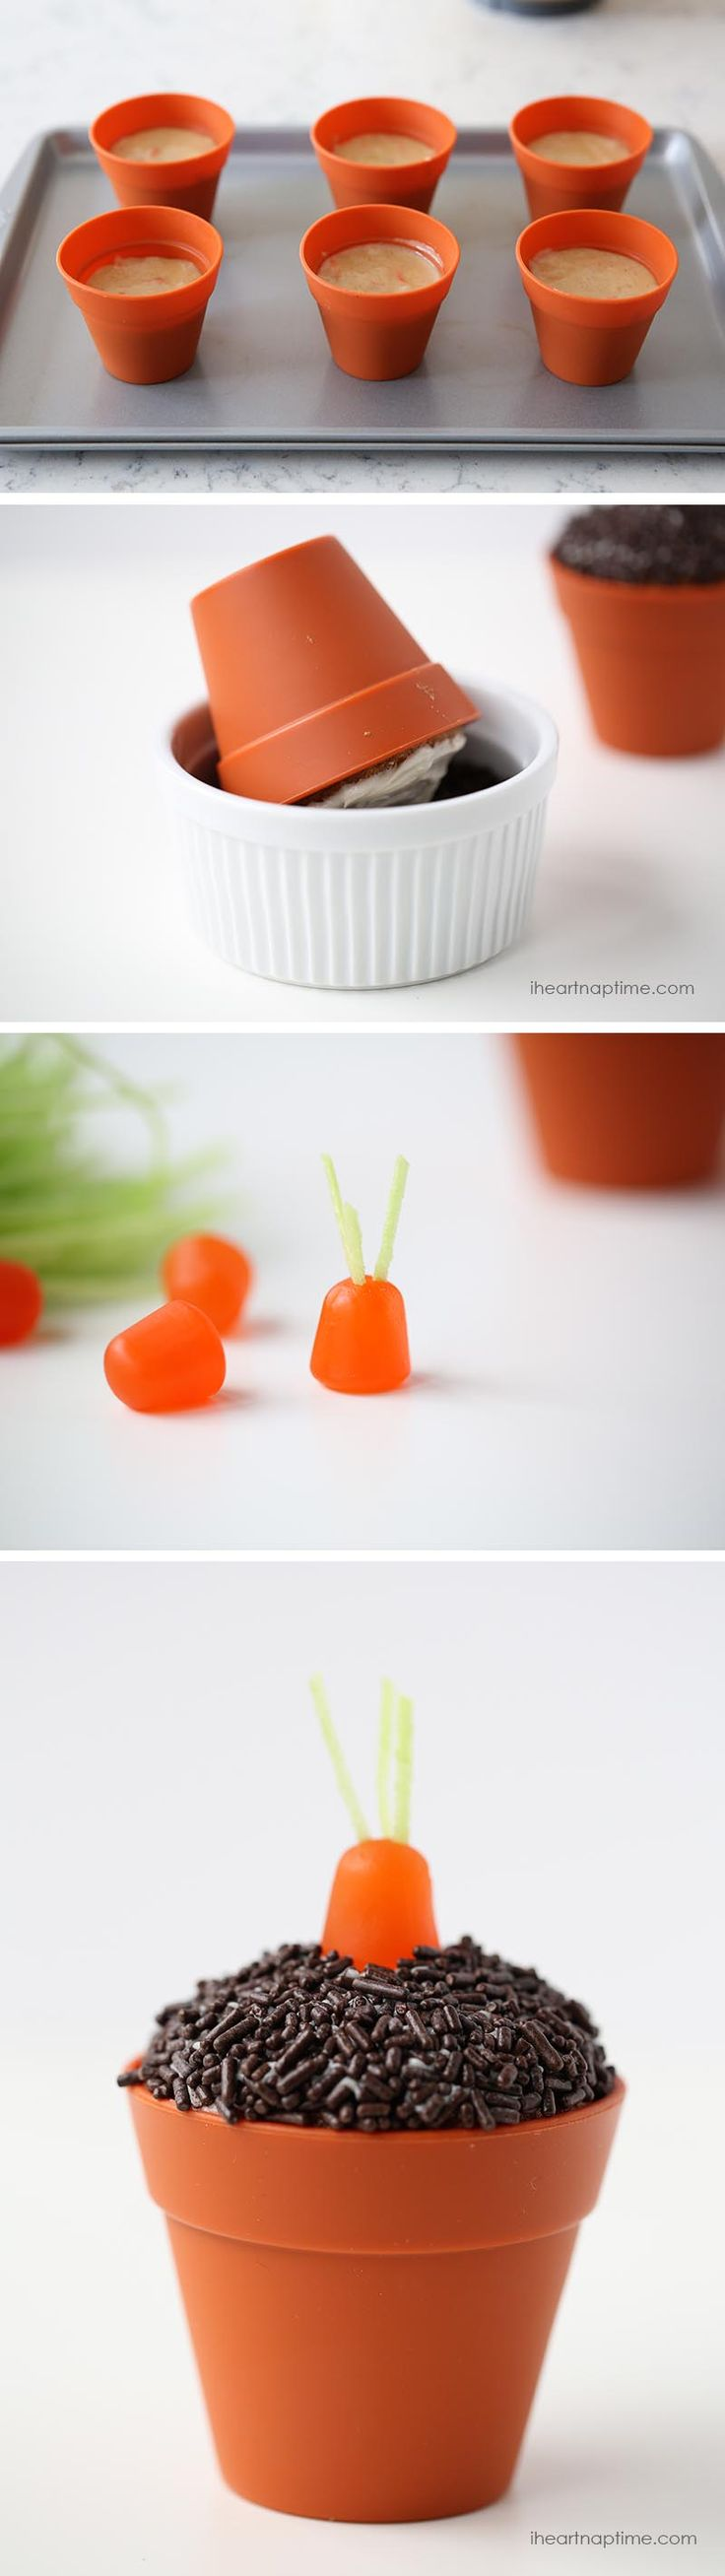 Carrot cupcakes in a pot! So cute and simple. Such a great treat for Easter!